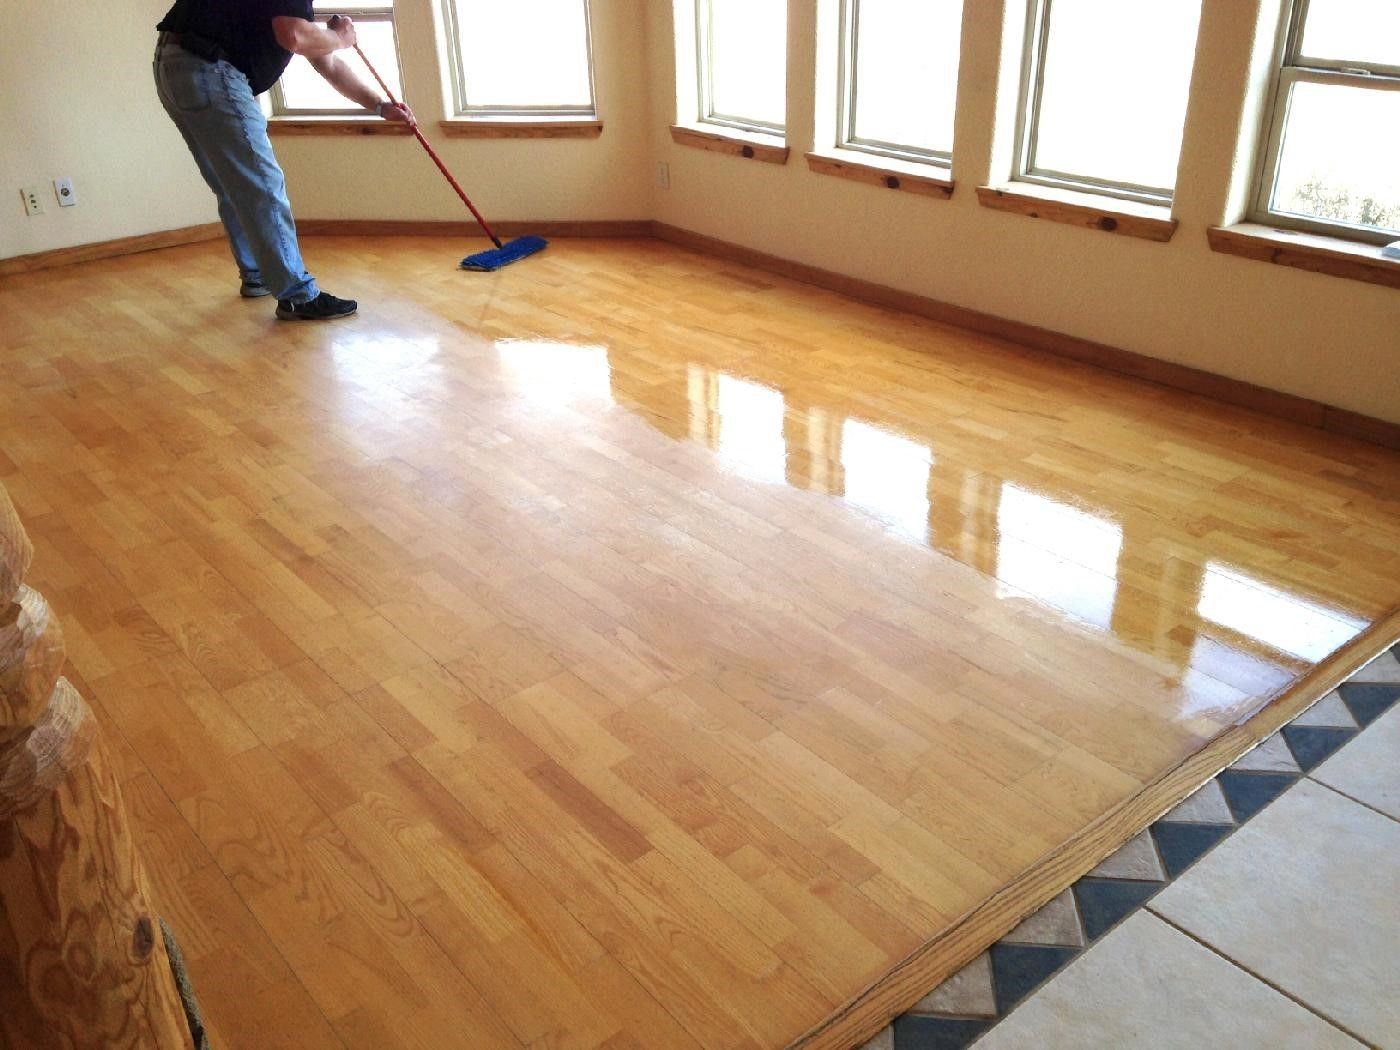 Professional Hardwood Floor Cleaning Richmond Va 804 298 0287 Throughout Hardwood Flooring Wax Hardwoodflooringwax